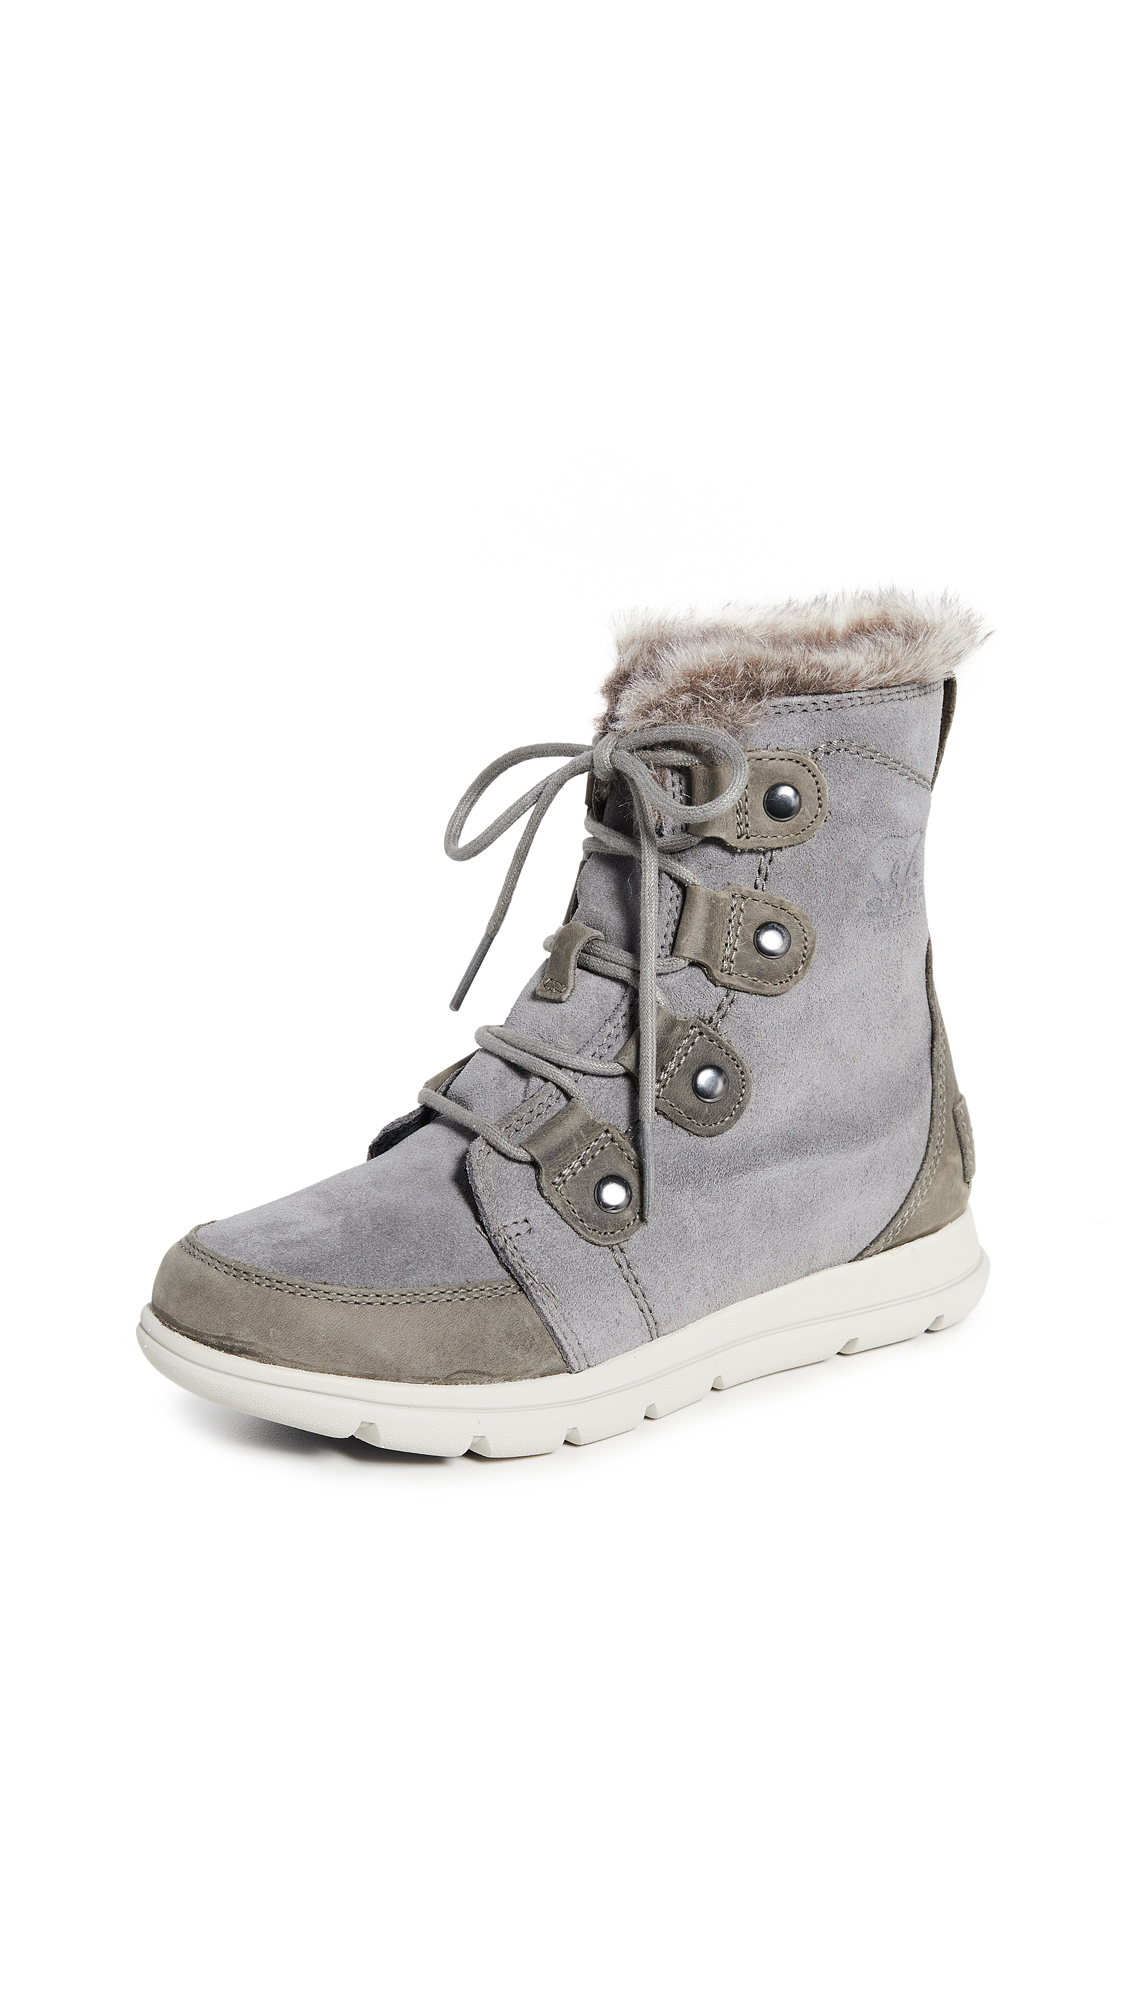 Sorel Sorel Explorer Joan Boots – 50% Off Sale